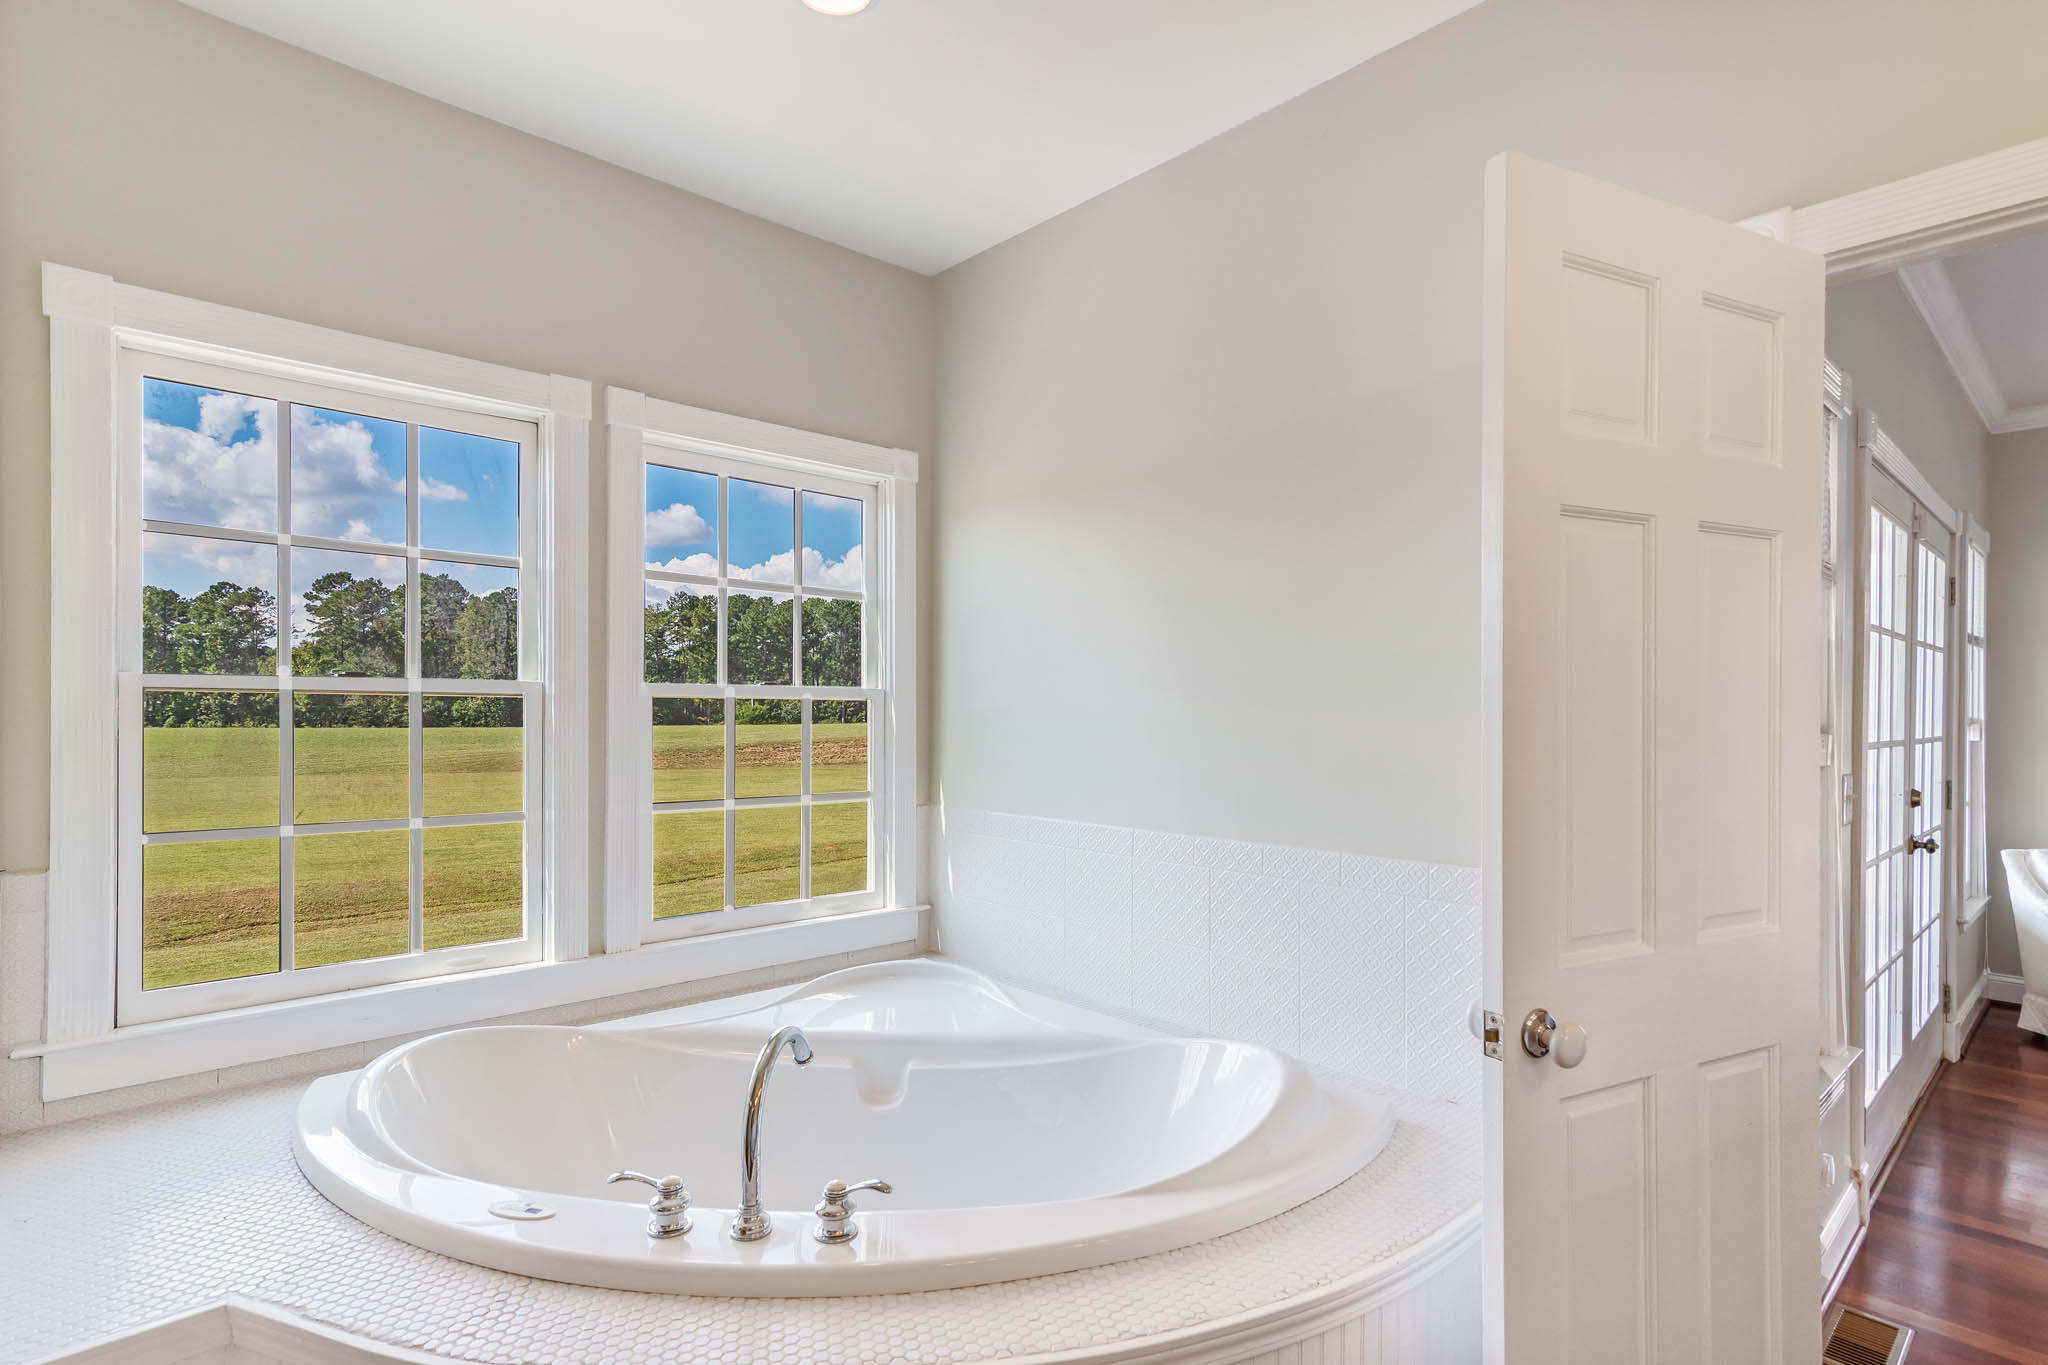 real_estate_photographer_bathroom_photography-7.jpg